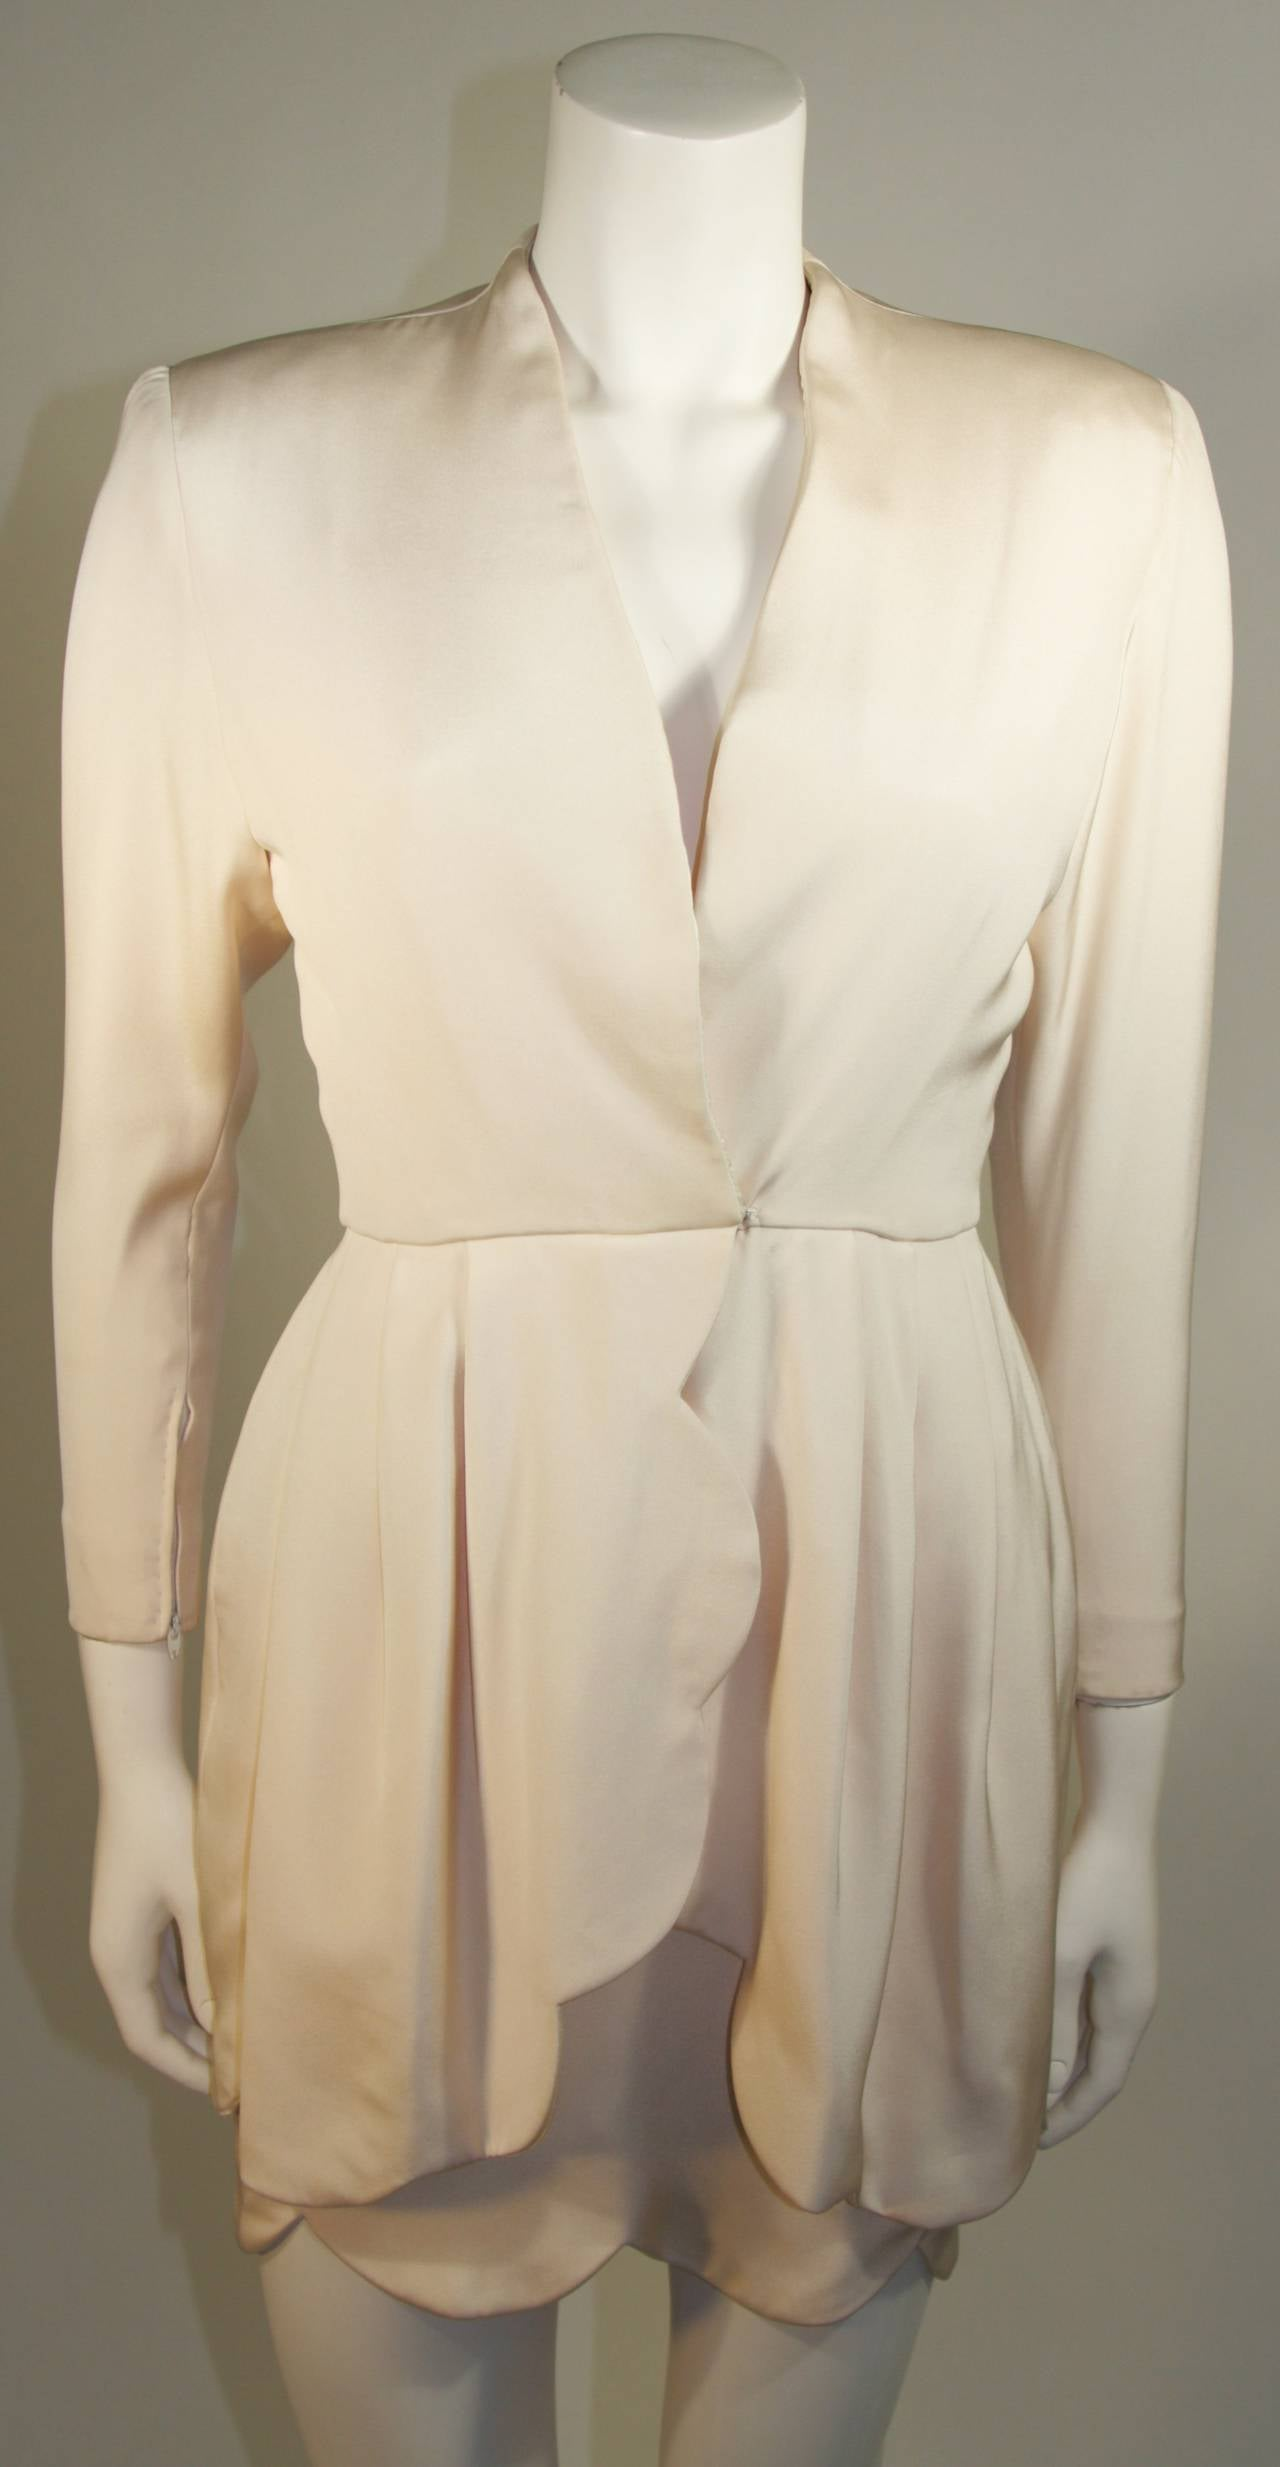 This gown is attributed to Valentino for Ira Berg dress is composed of a cream silk with a fabulous scalloped edge. The closure is at the center front which features a zipper and hook and eye closure. Made in France.   Measures